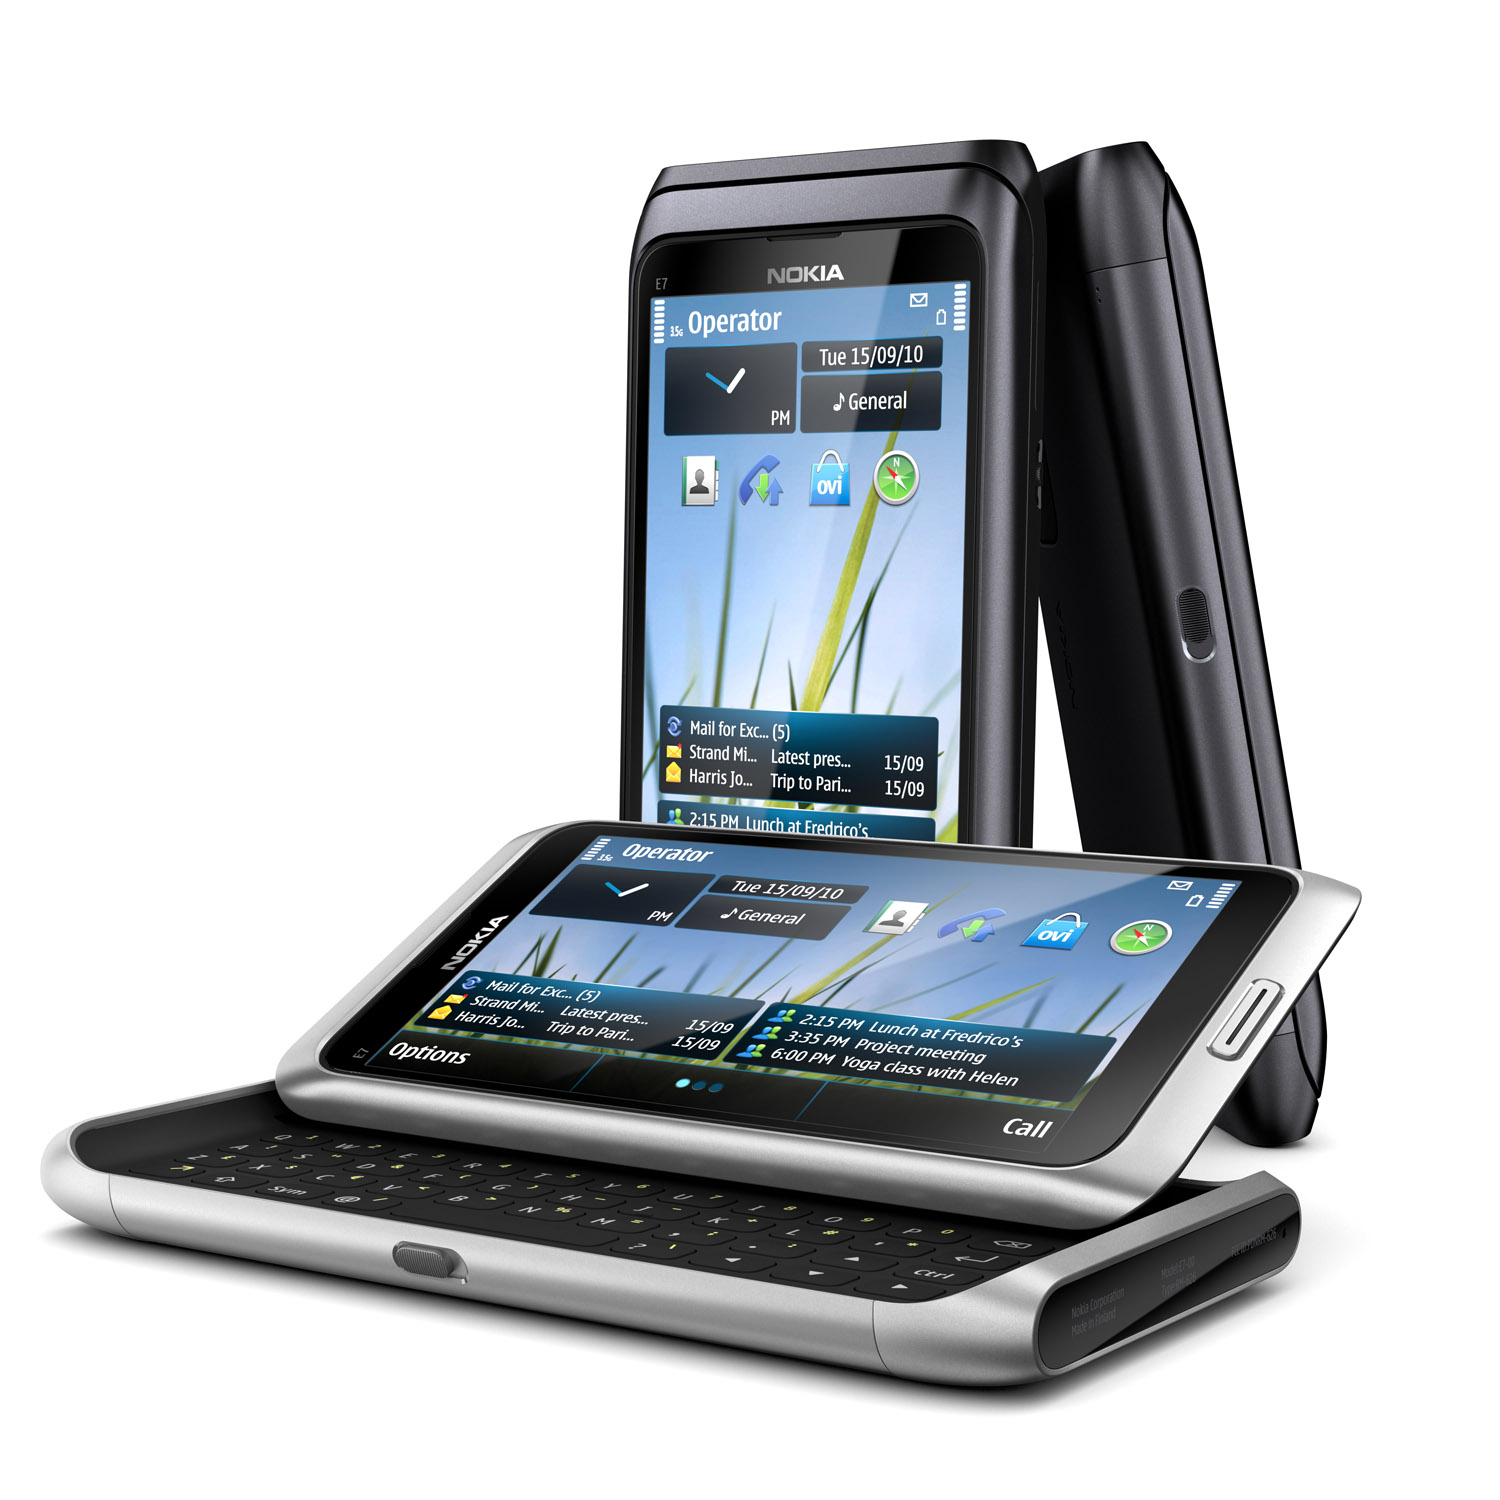 1 nokia e7 31 - Nokia Launches Its Latest Communicator, the Nokia E7